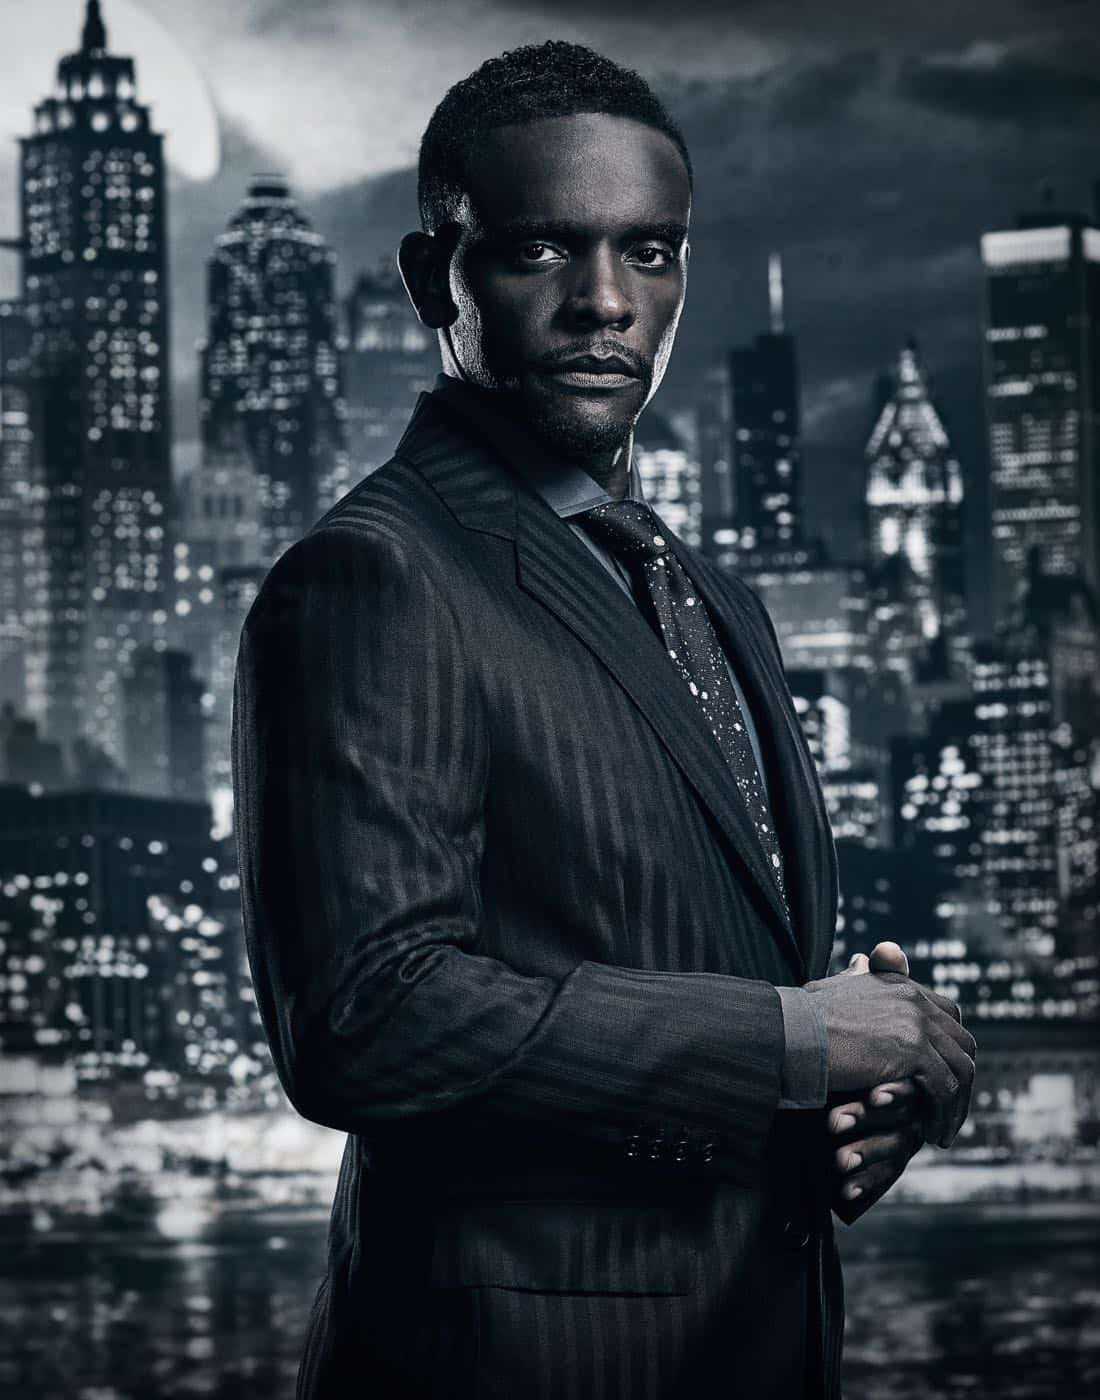 Chris Chalk. Season 4 of GOTHAM